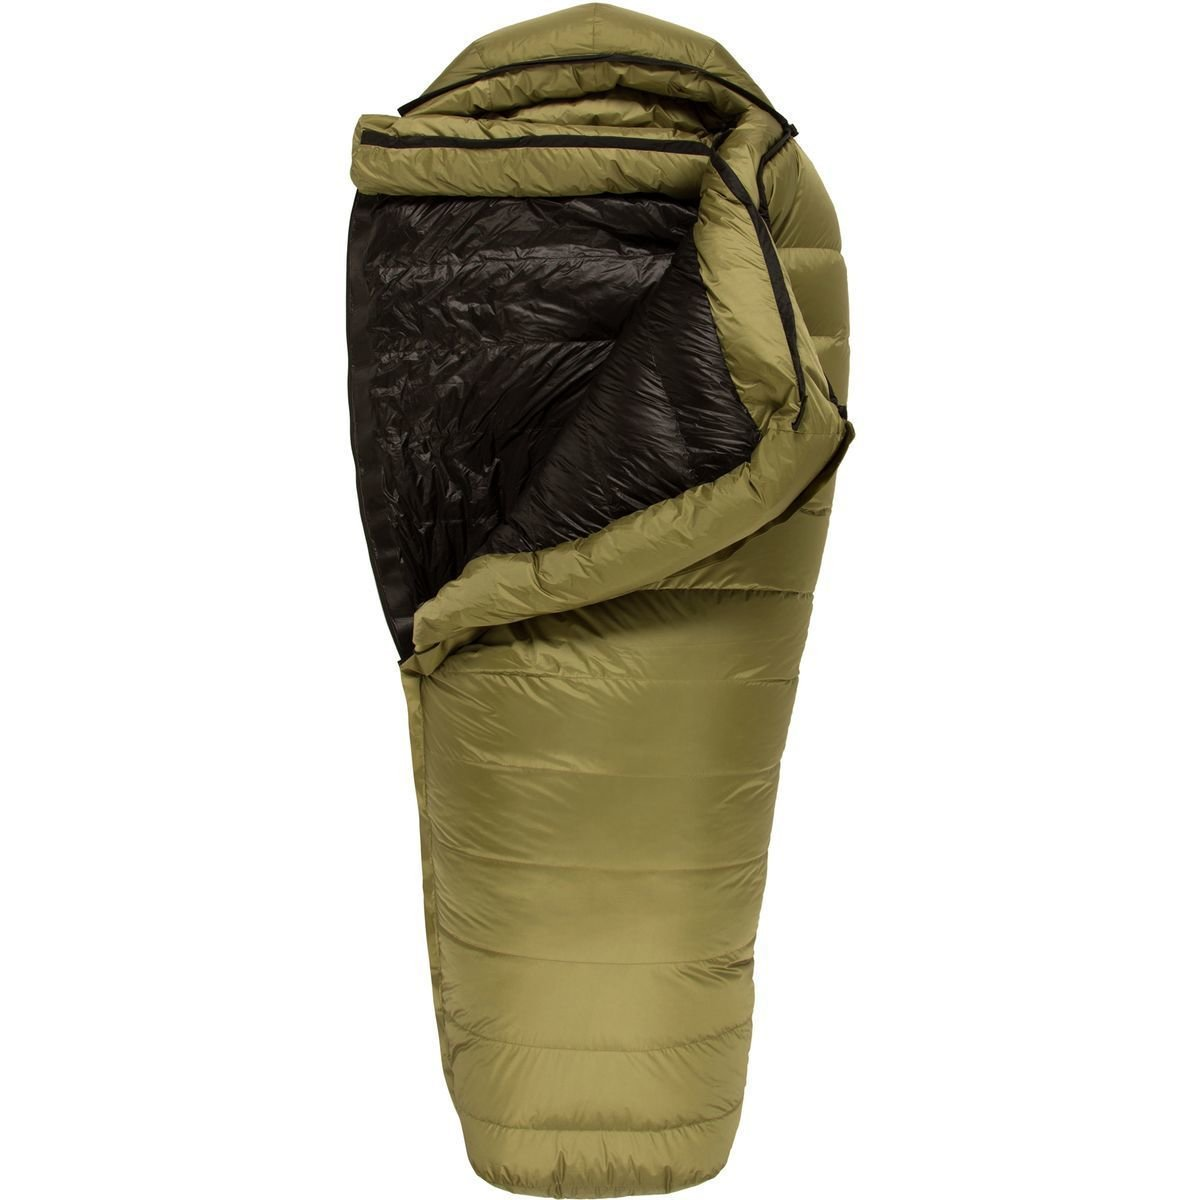 An image of Western Mountaineering Men's Down Sleeping Bag